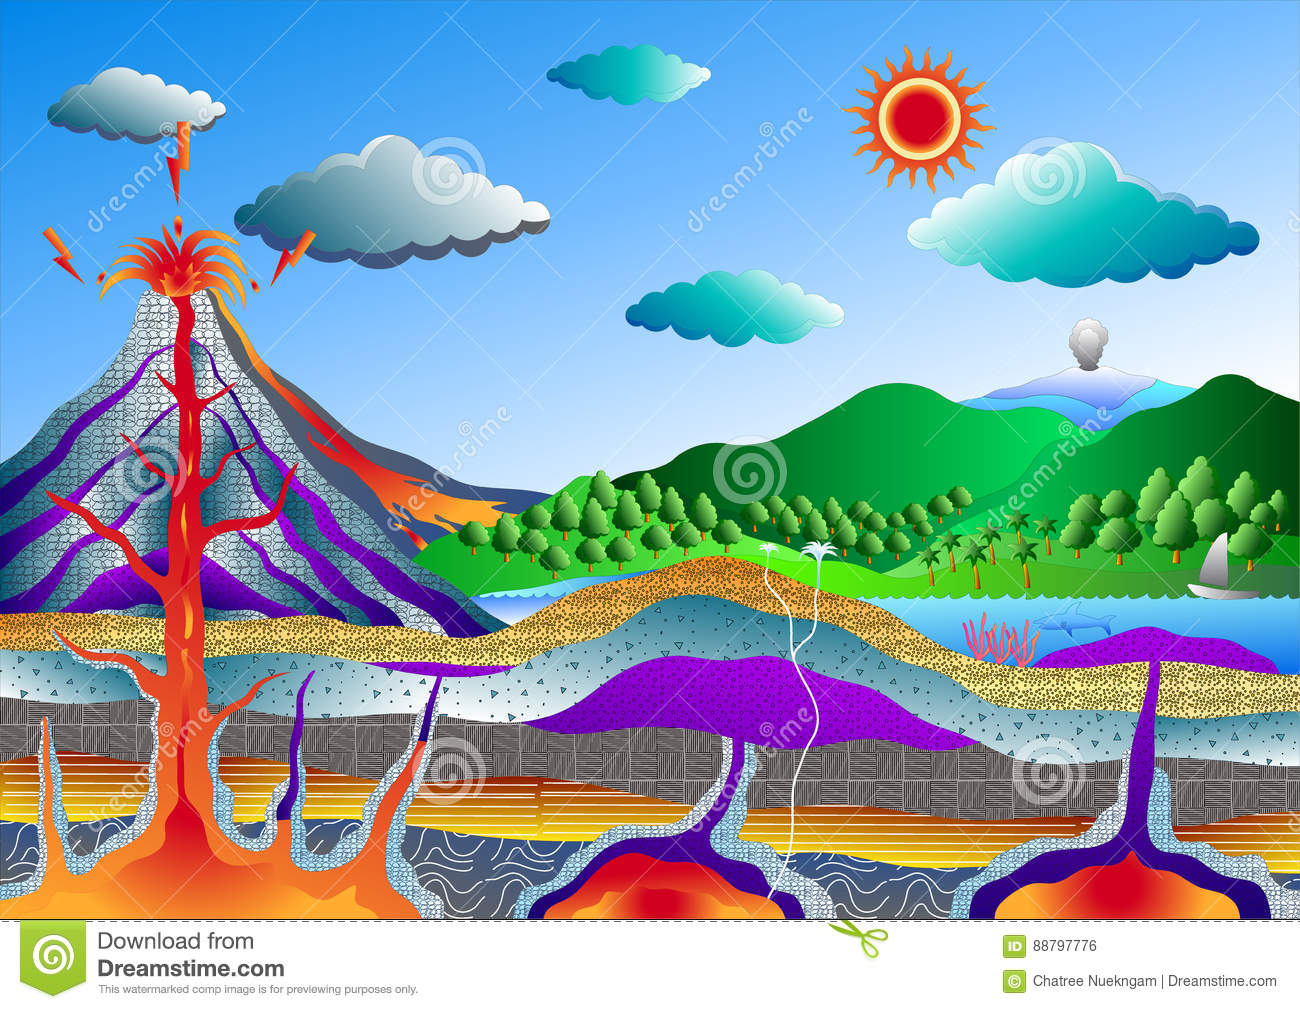 Rock cycle diagram stock vector illustration of learn 88797776 download comp ccuart Choice Image